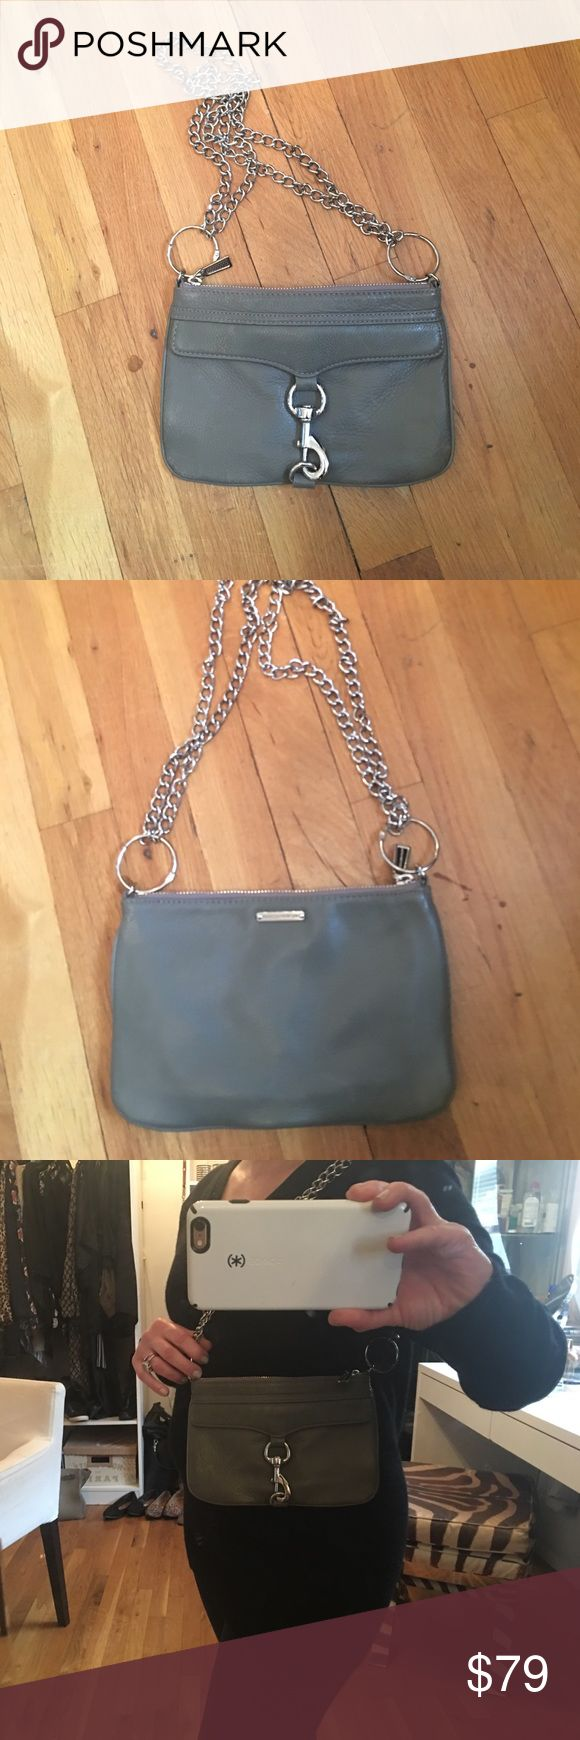 Rebecca Minkoff grey clutch A beautiful grey clutch bag that I made into a shoulder bag with 2 chains and o rings.  Works perfectly if that how you would wish to carry it. Pristine interior and signature lock in front, does not open on front! Silver hardware. Rebecca Minkoff Bags Clutches & Wristlets